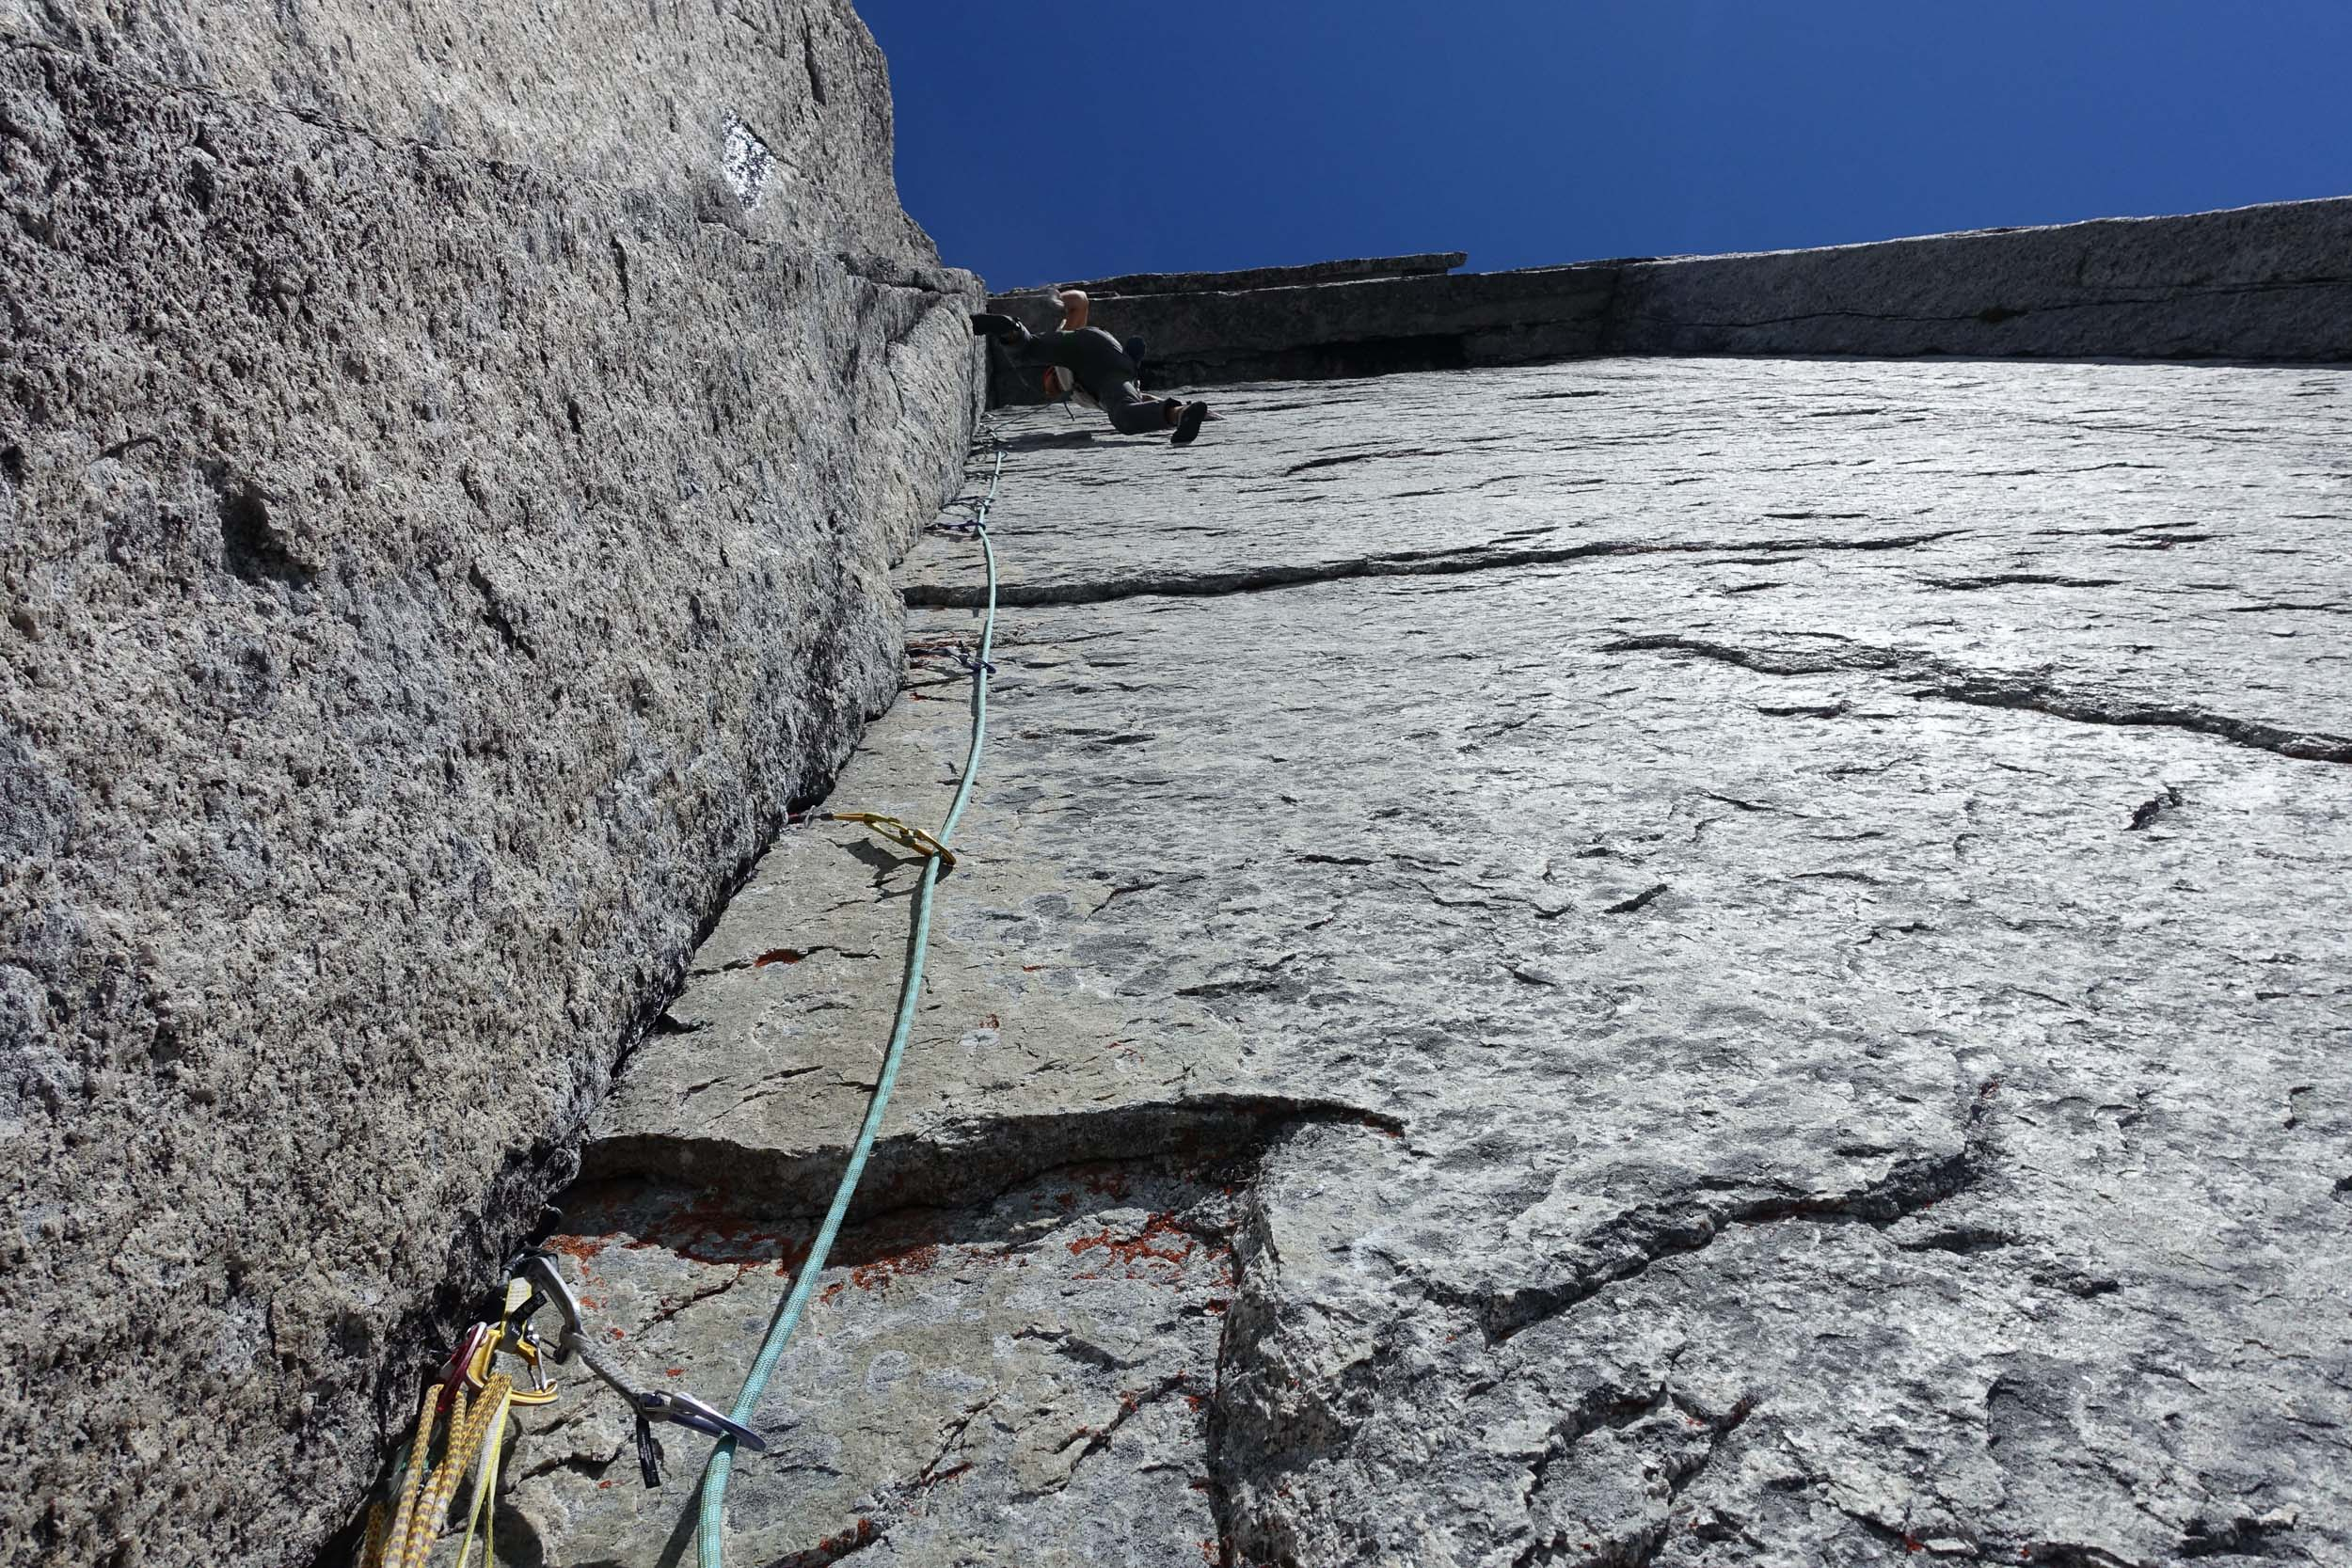 Jesse Huey sending the crux of Armageddon on his second try on our second day. Photo: Maury Birdwell